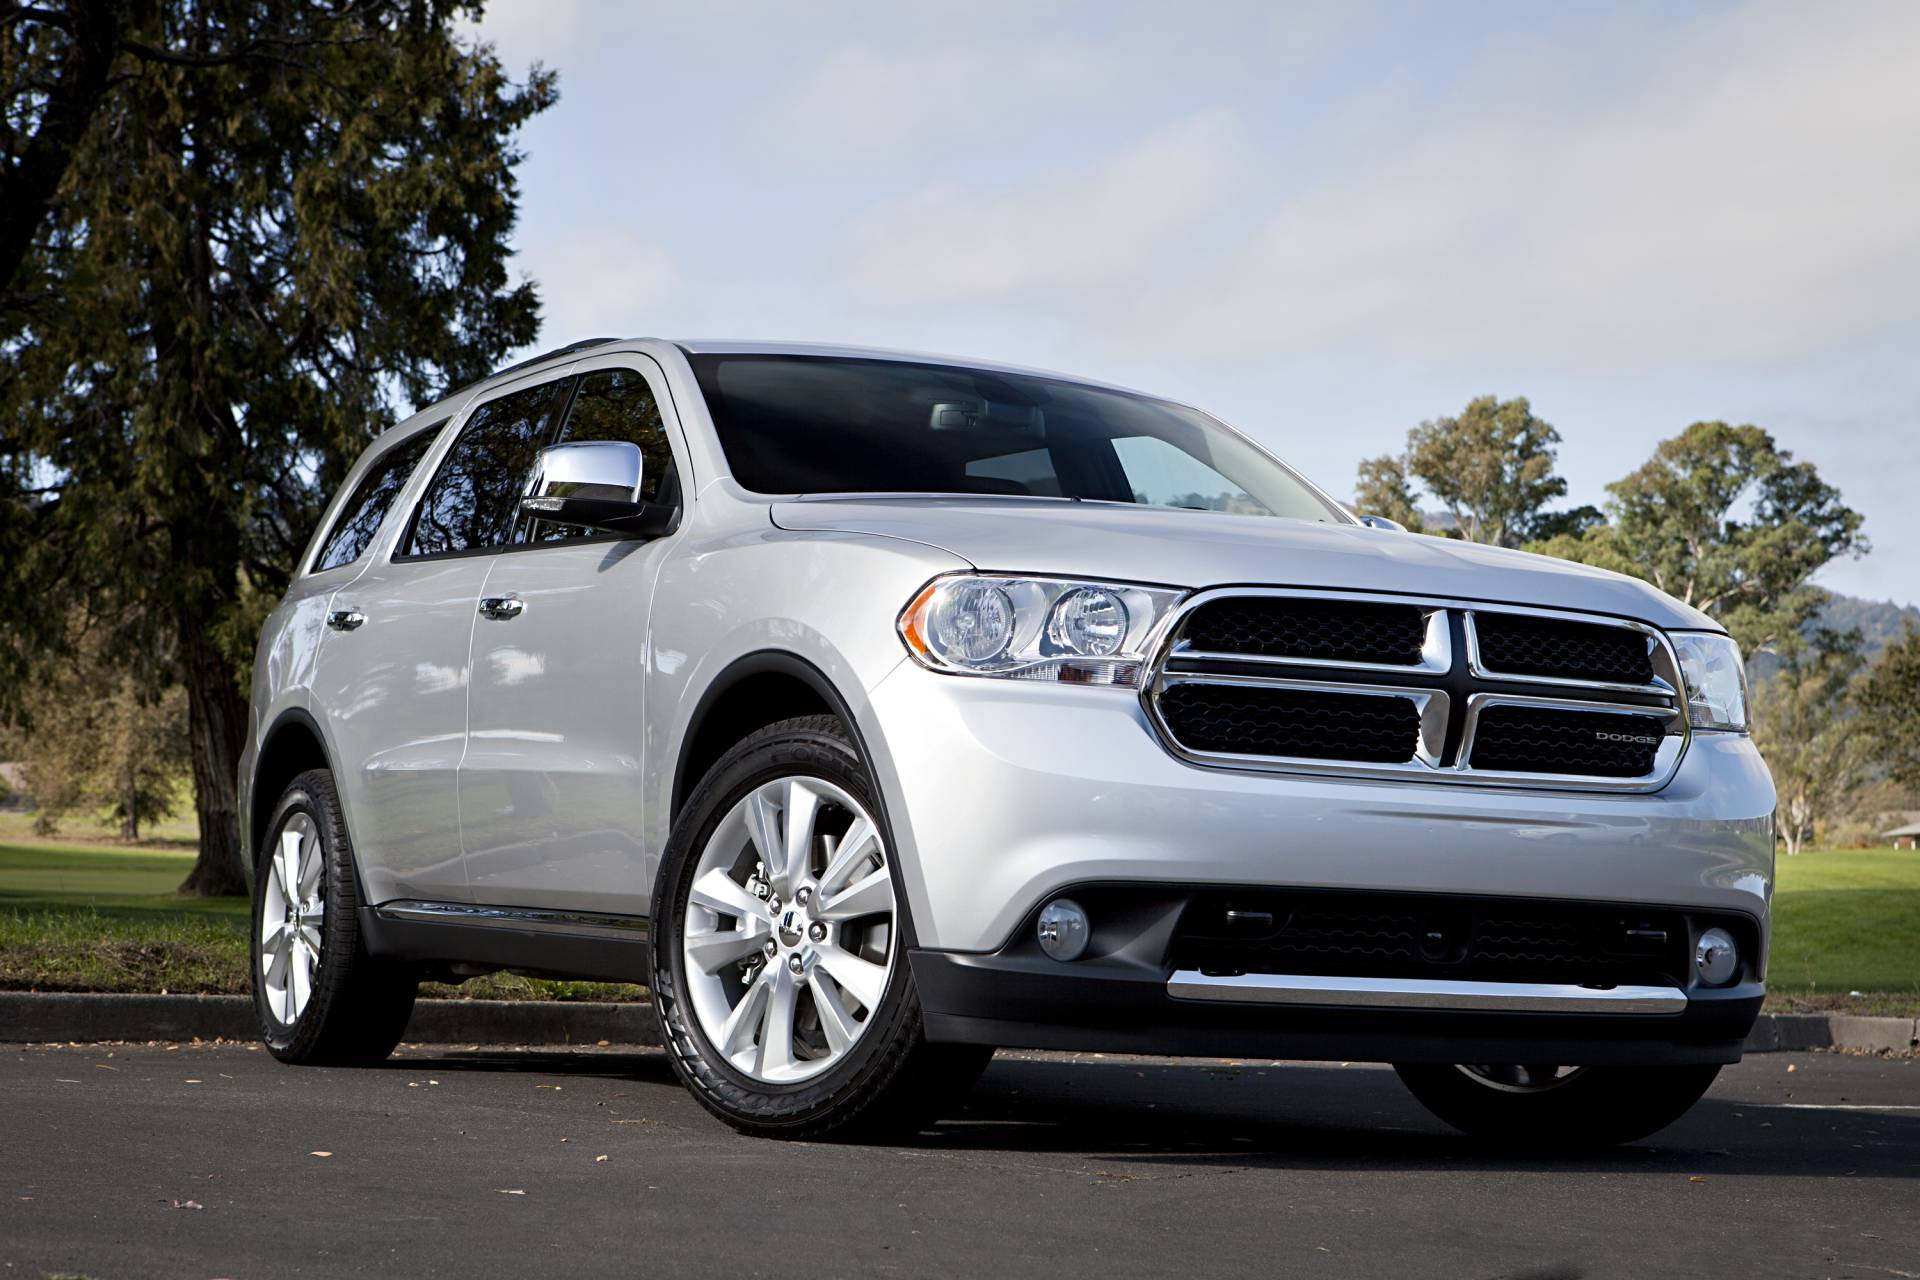 2013 dodge durango. Black Bedroom Furniture Sets. Home Design Ideas